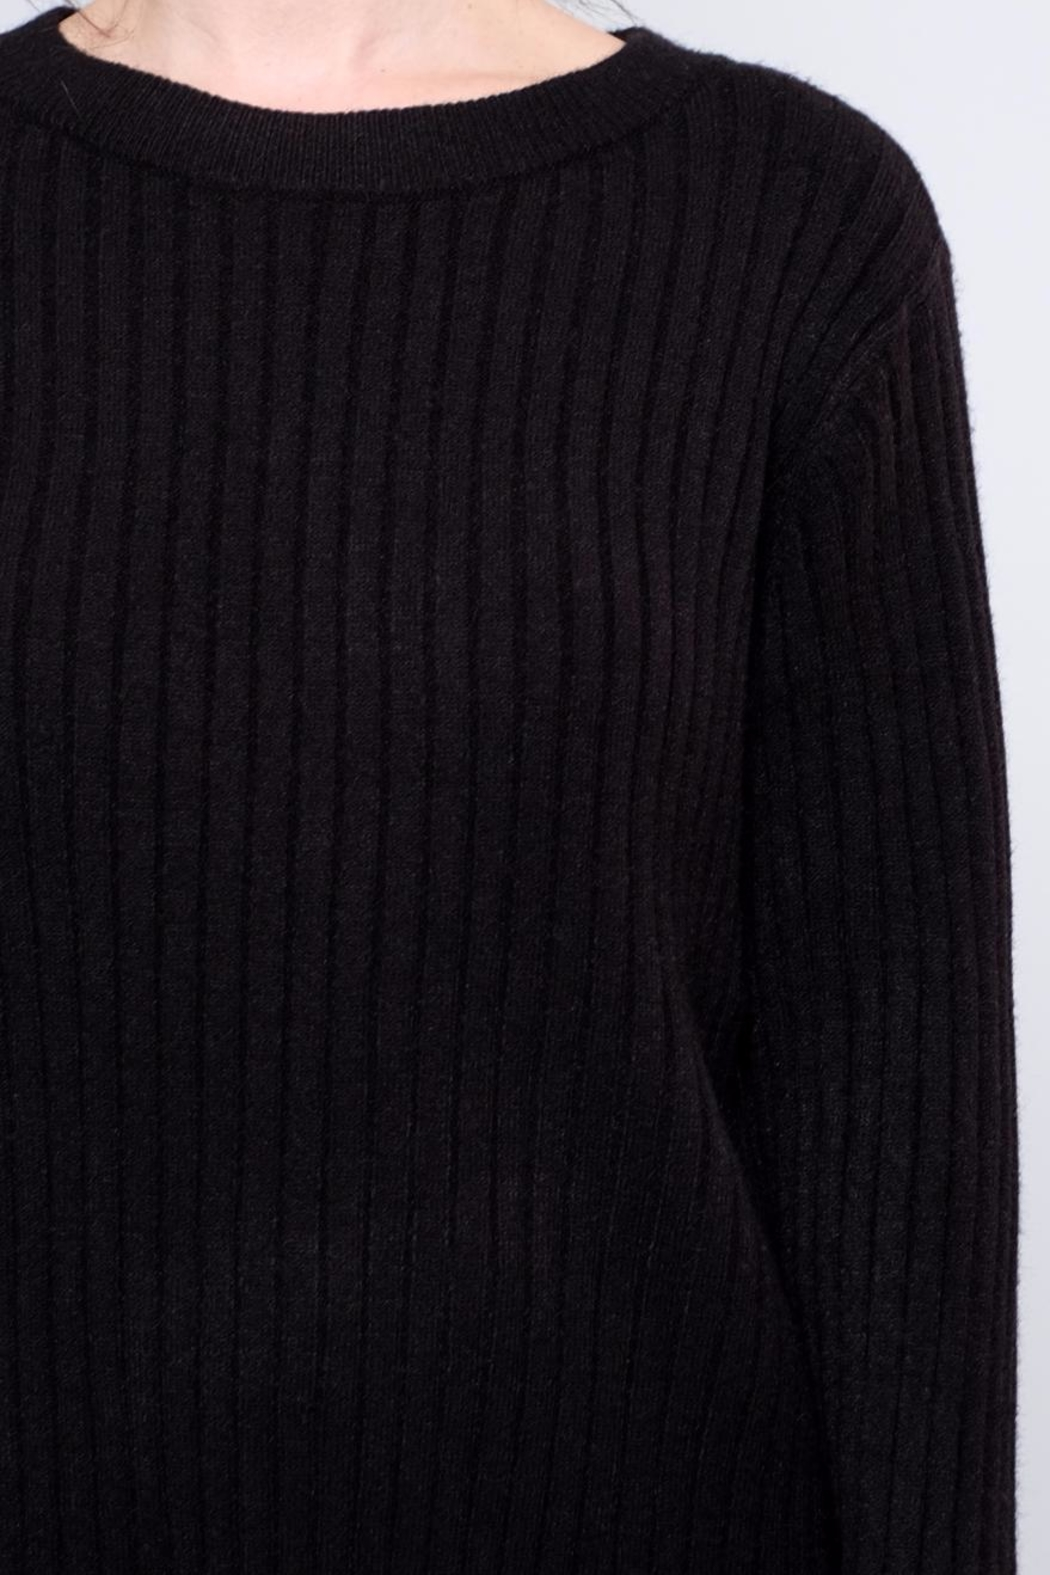 Vero Moda Oversized Ribbed Sweater from Vancouver by 8th & Main ...